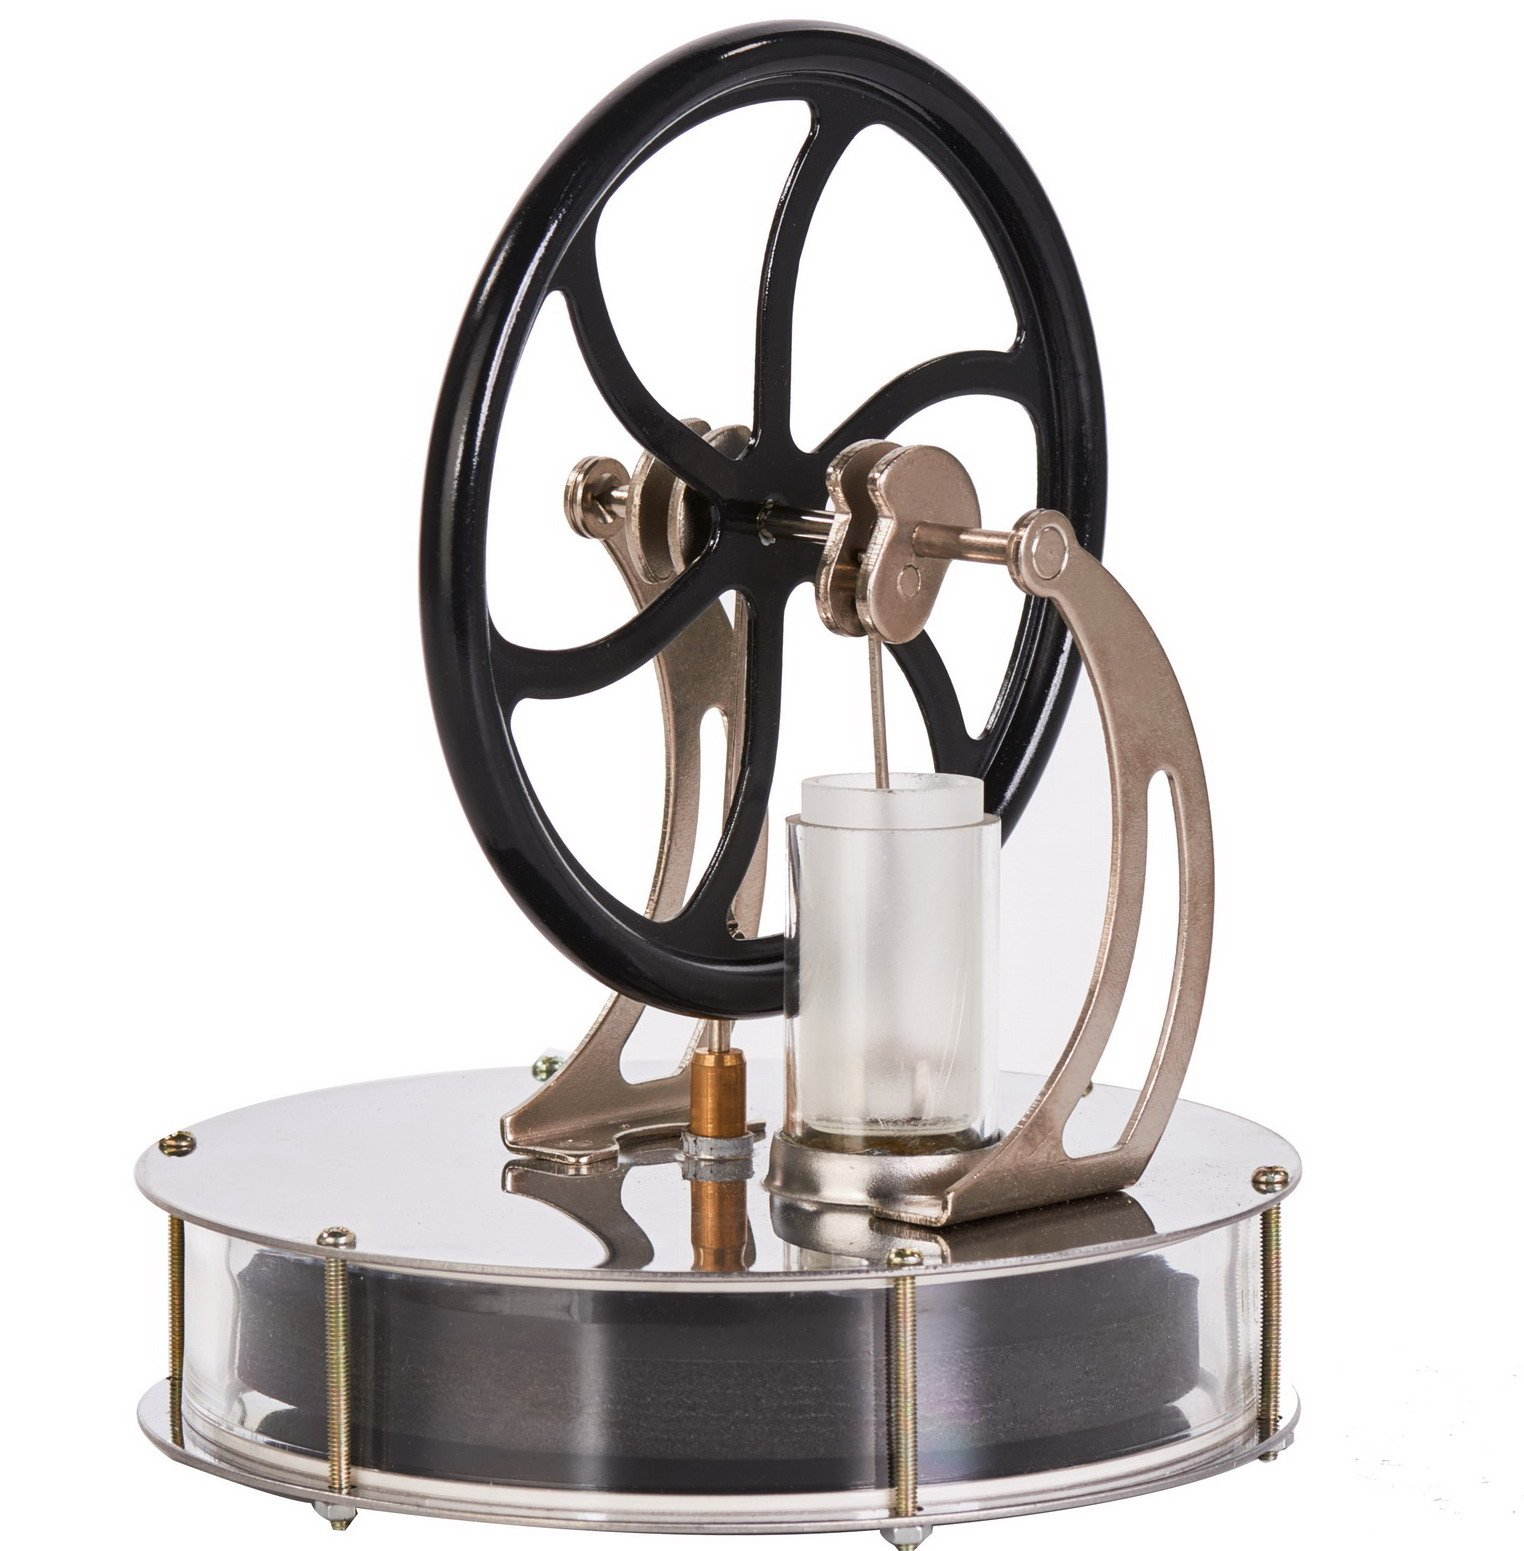 Sunnytech Low Temperature Stirling Engine Motor Steam Heat Education Model Toy Toy Great Gift for Boyfriend or Girlfriend, Parents, Kids (LT003)